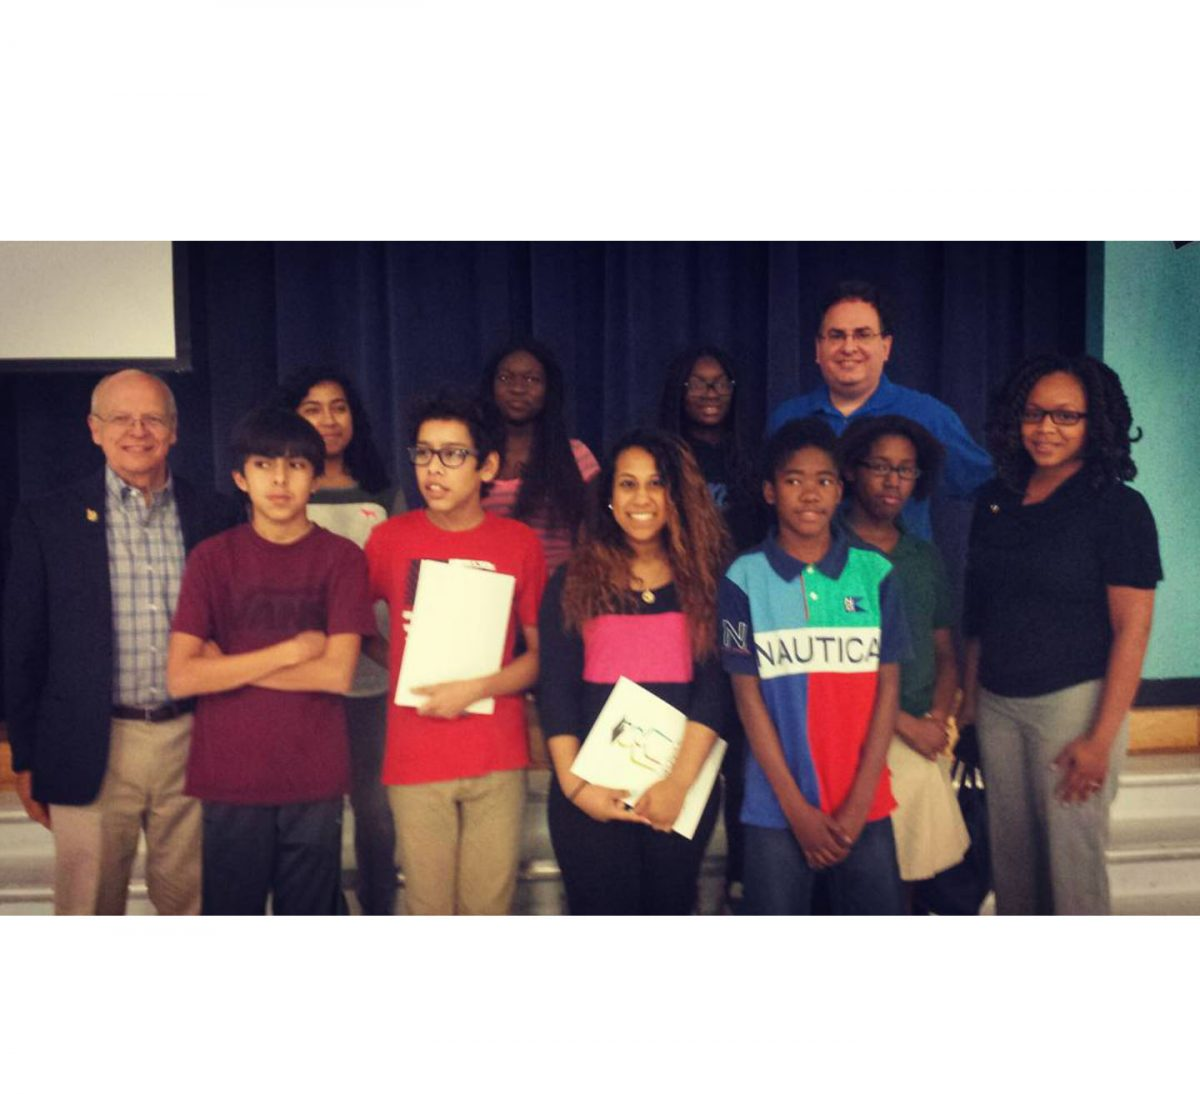 Firewall Centers partners with Take Stock in Children to achieve one goal: changed lives.